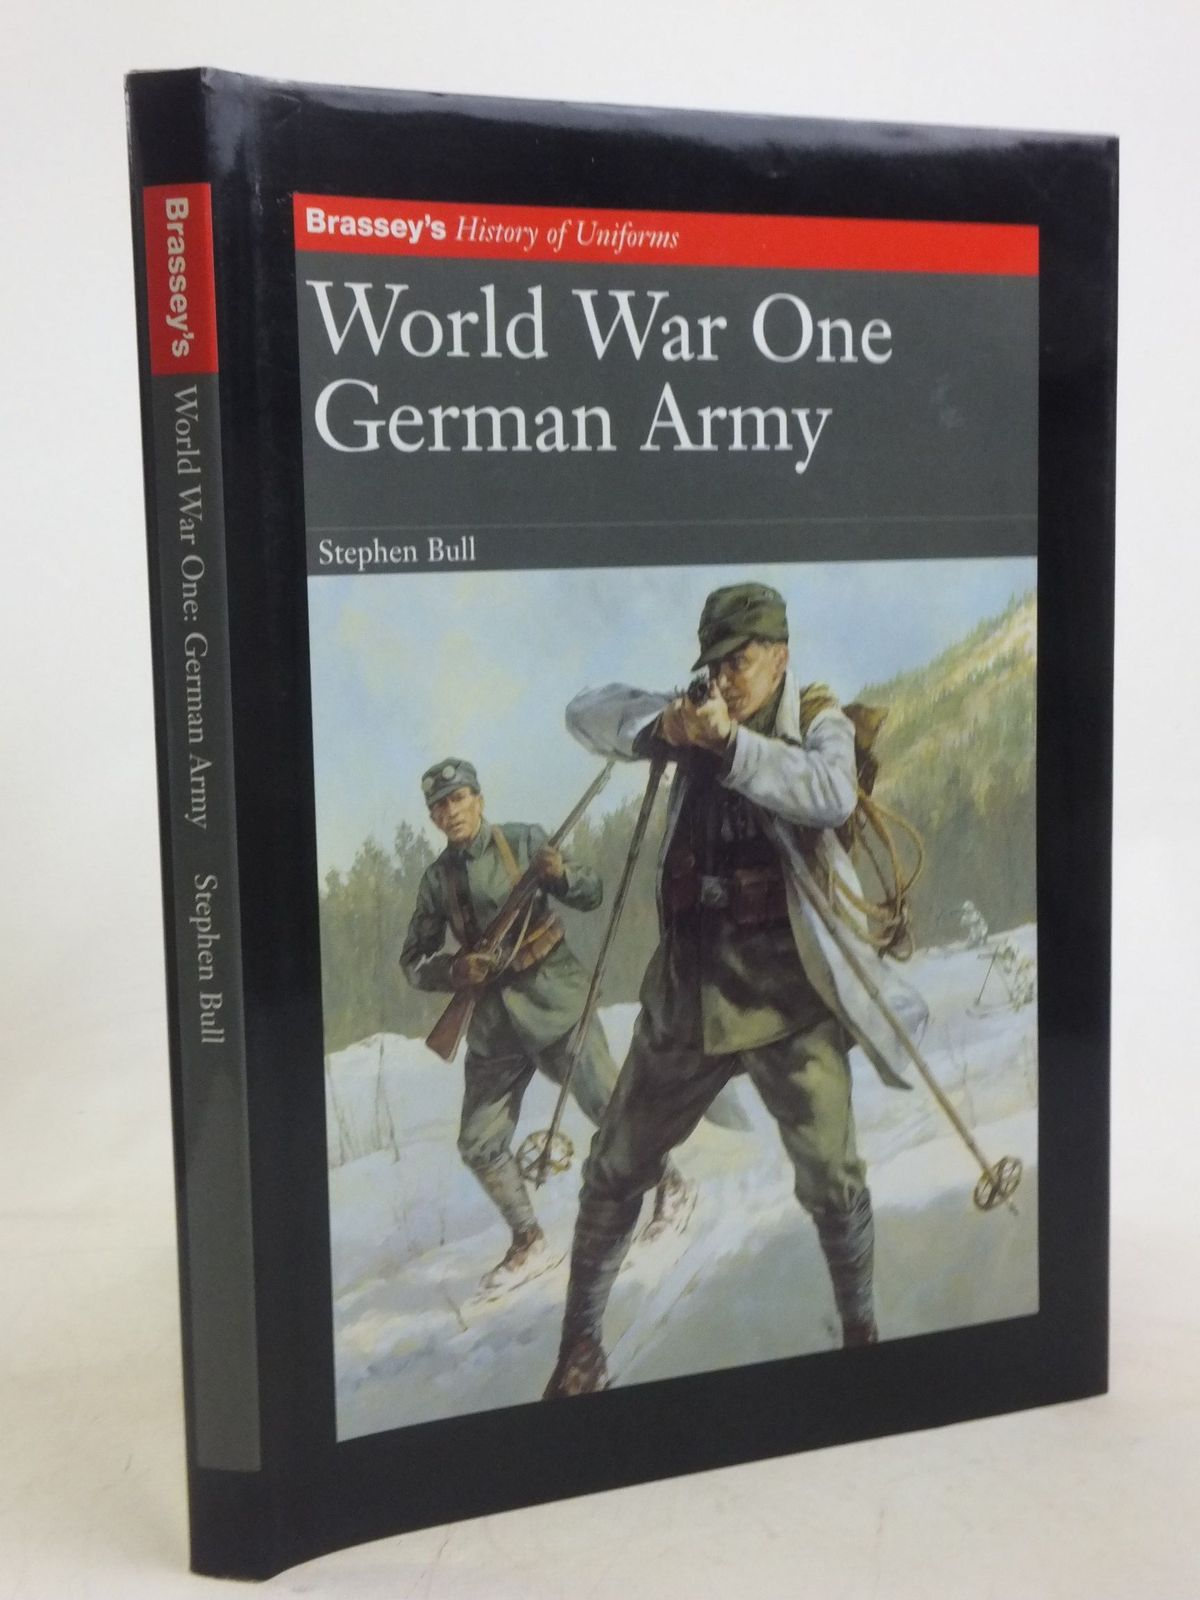 Photo of WORLD WAR ONE GERMAN ARMY written by Bull, Stephen illustrated by Hook, Christa published by Brassey's (STOCK CODE: 1712532)  for sale by Stella & Rose's Books